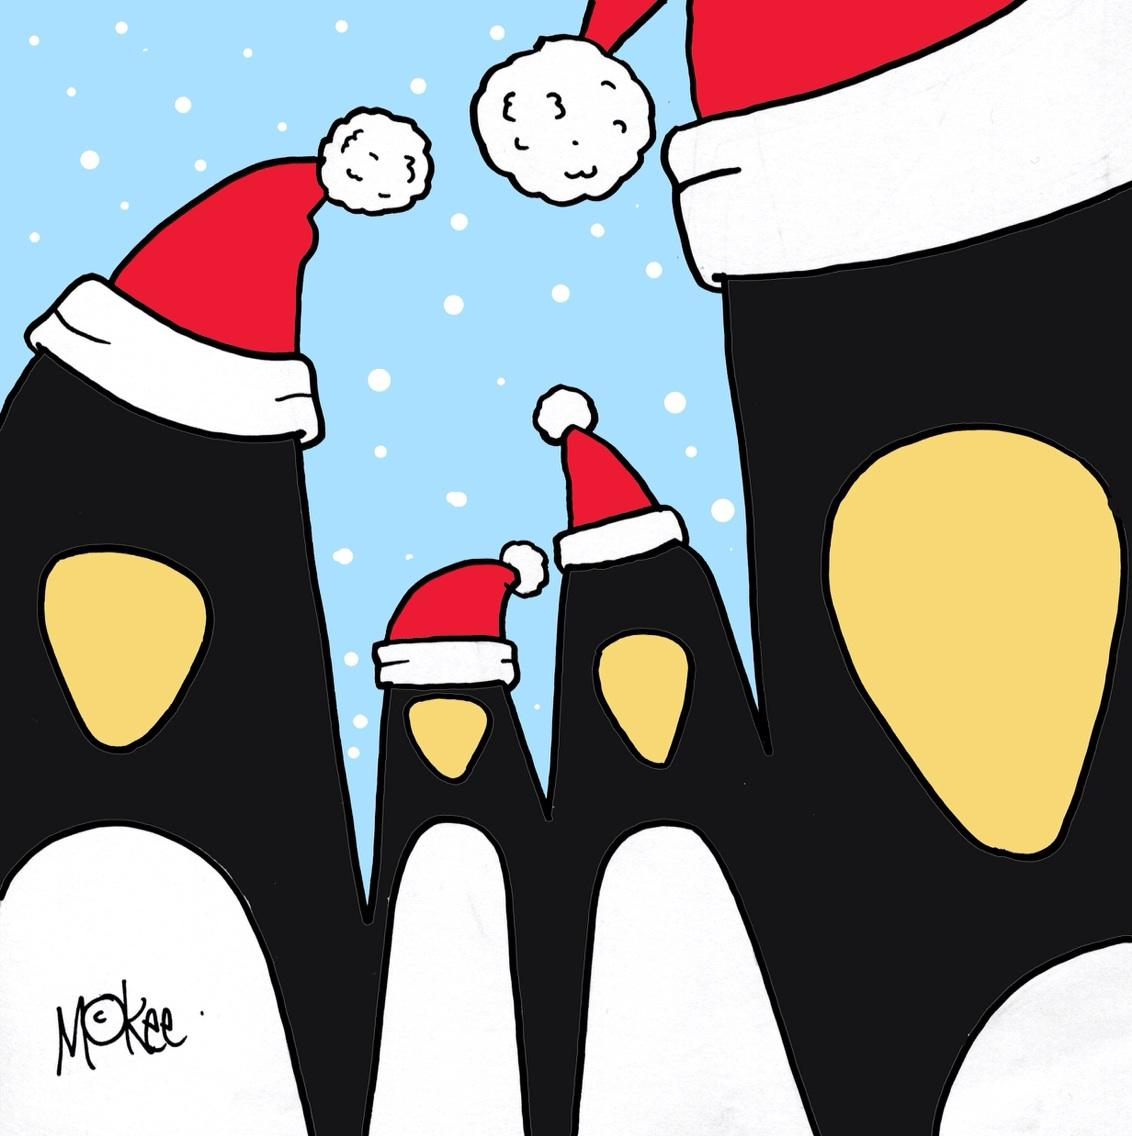 OK, OK. Early we know but available soon: This year's O Gen Christmas card by @PeteMcKee. PENGUINS!!! x x x http://t.co/dtb1fDTNsu